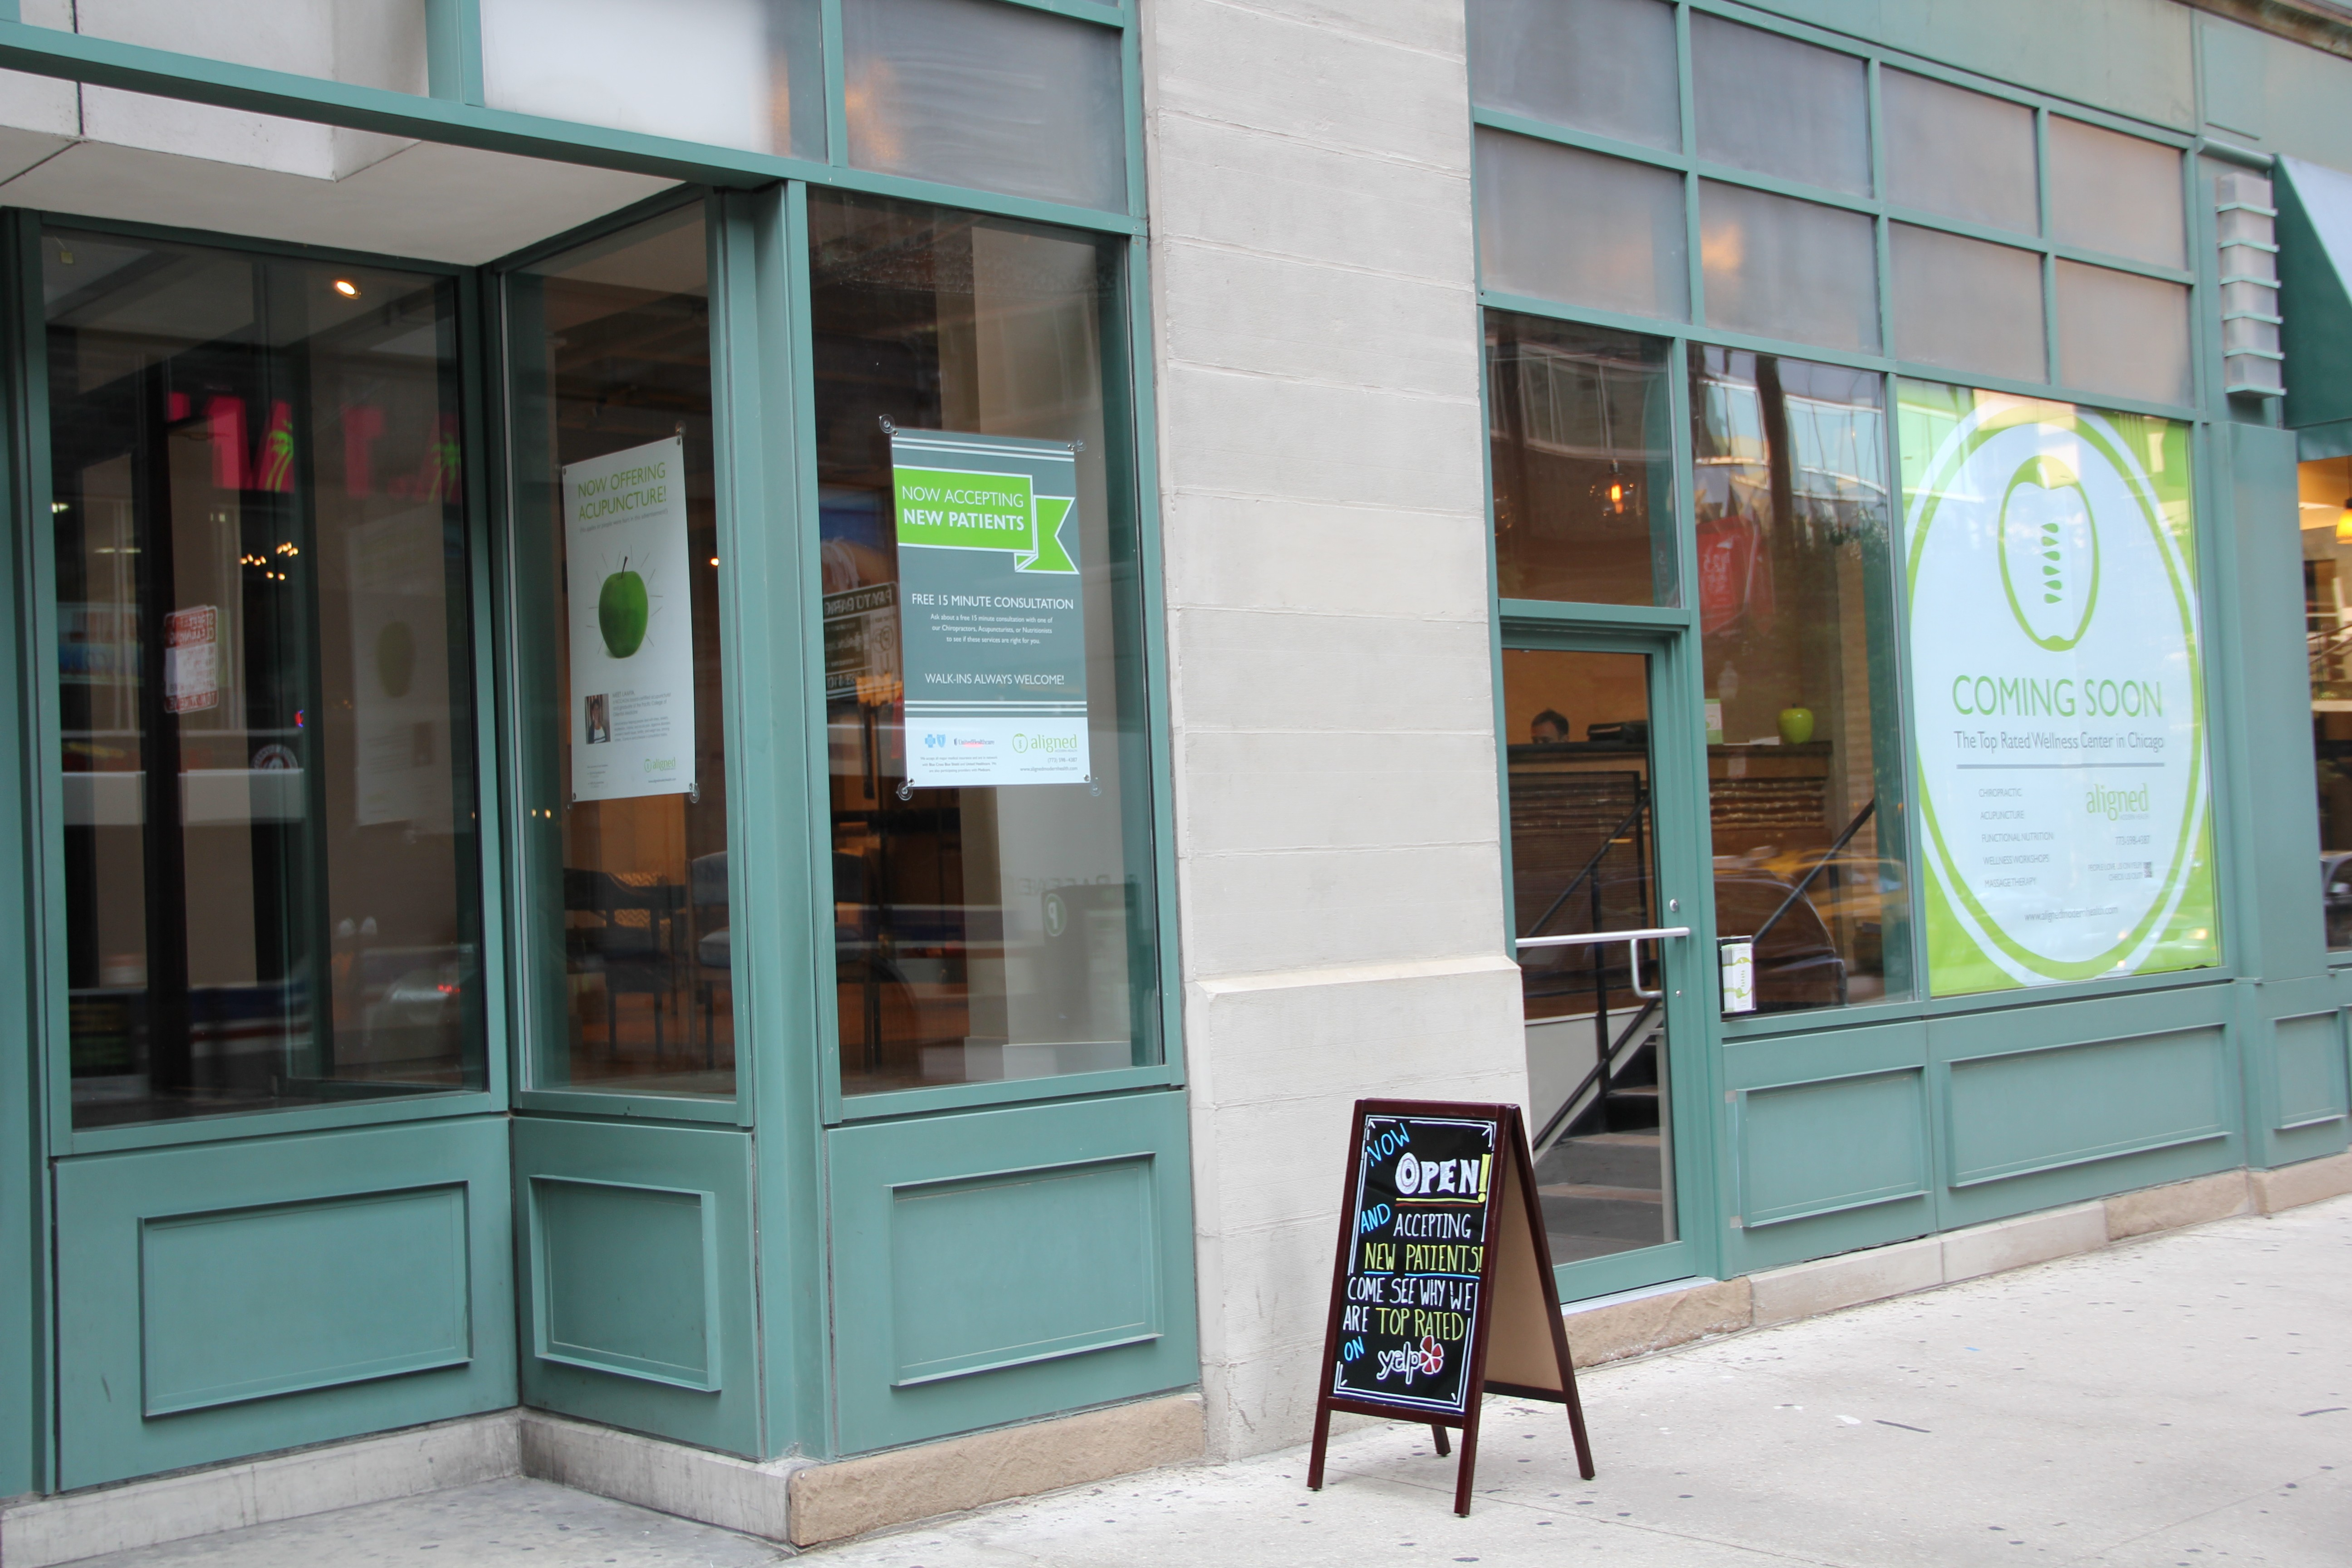 118 South Clinton Street, Chicago, IL 60661